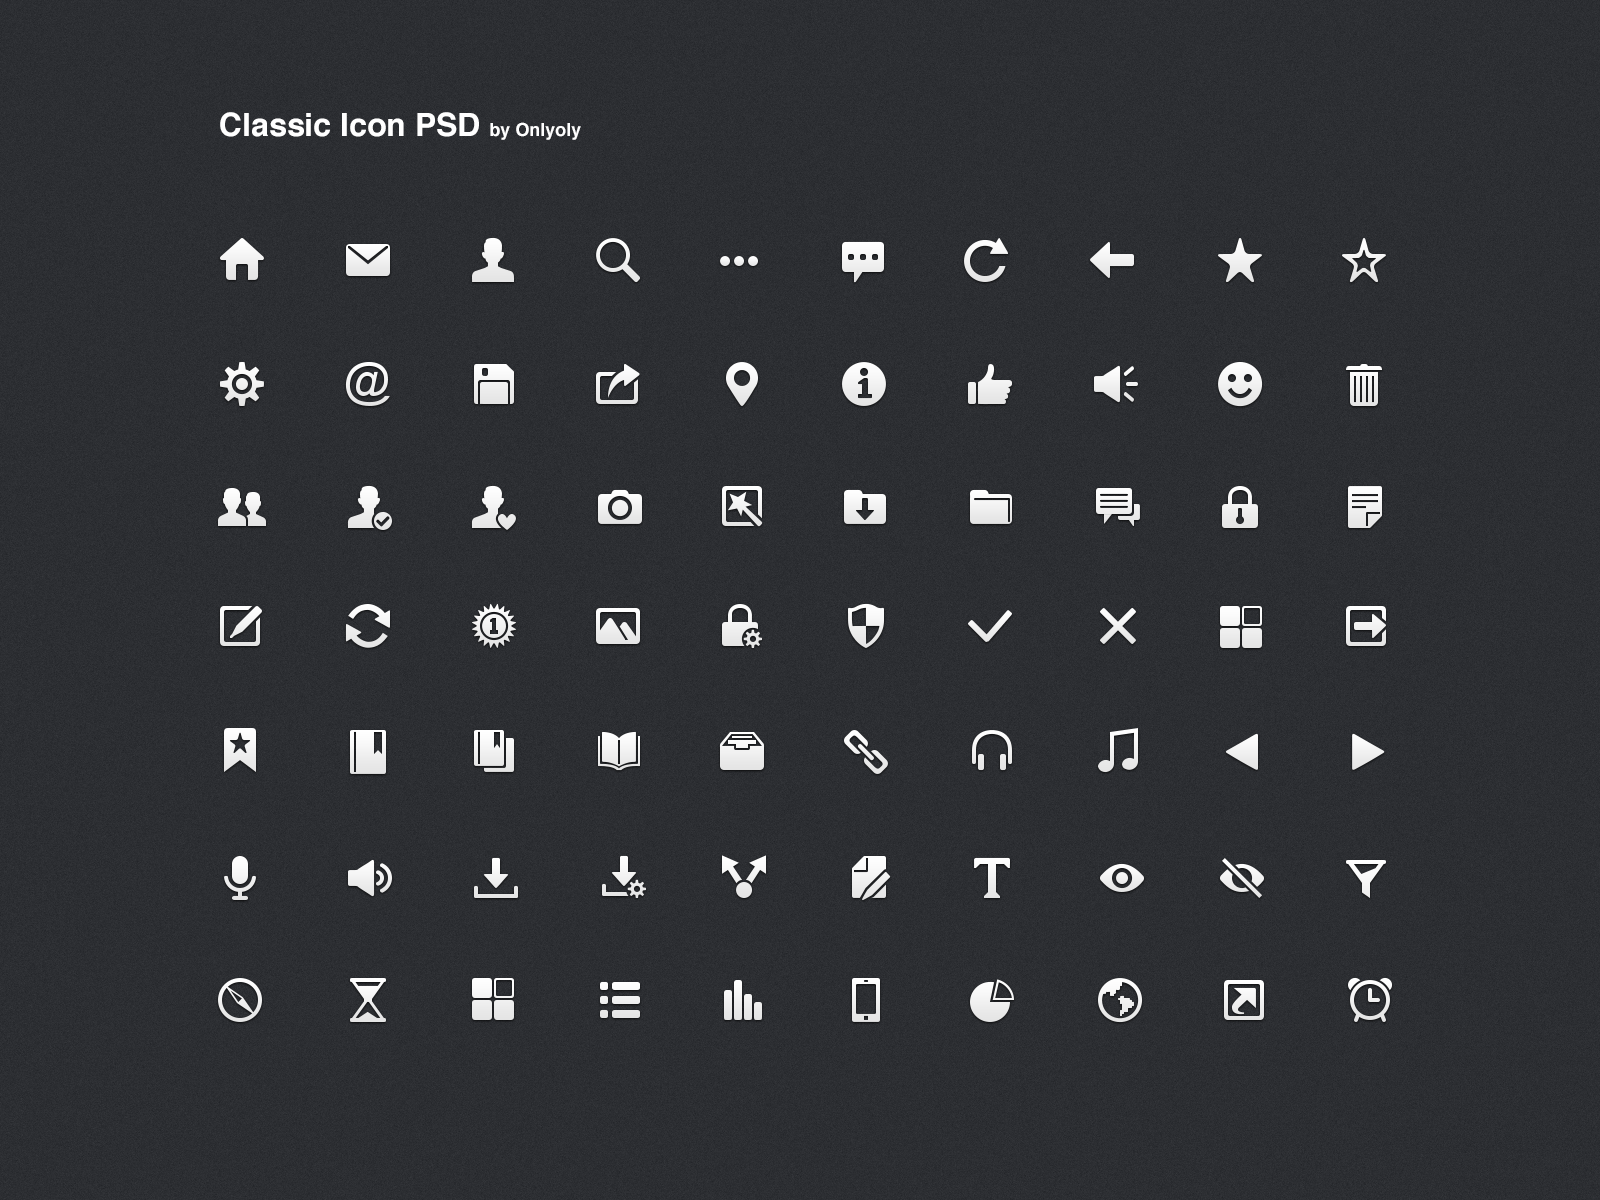 classic_icon_PSD_onlyoly.png by Onlyoly Web design